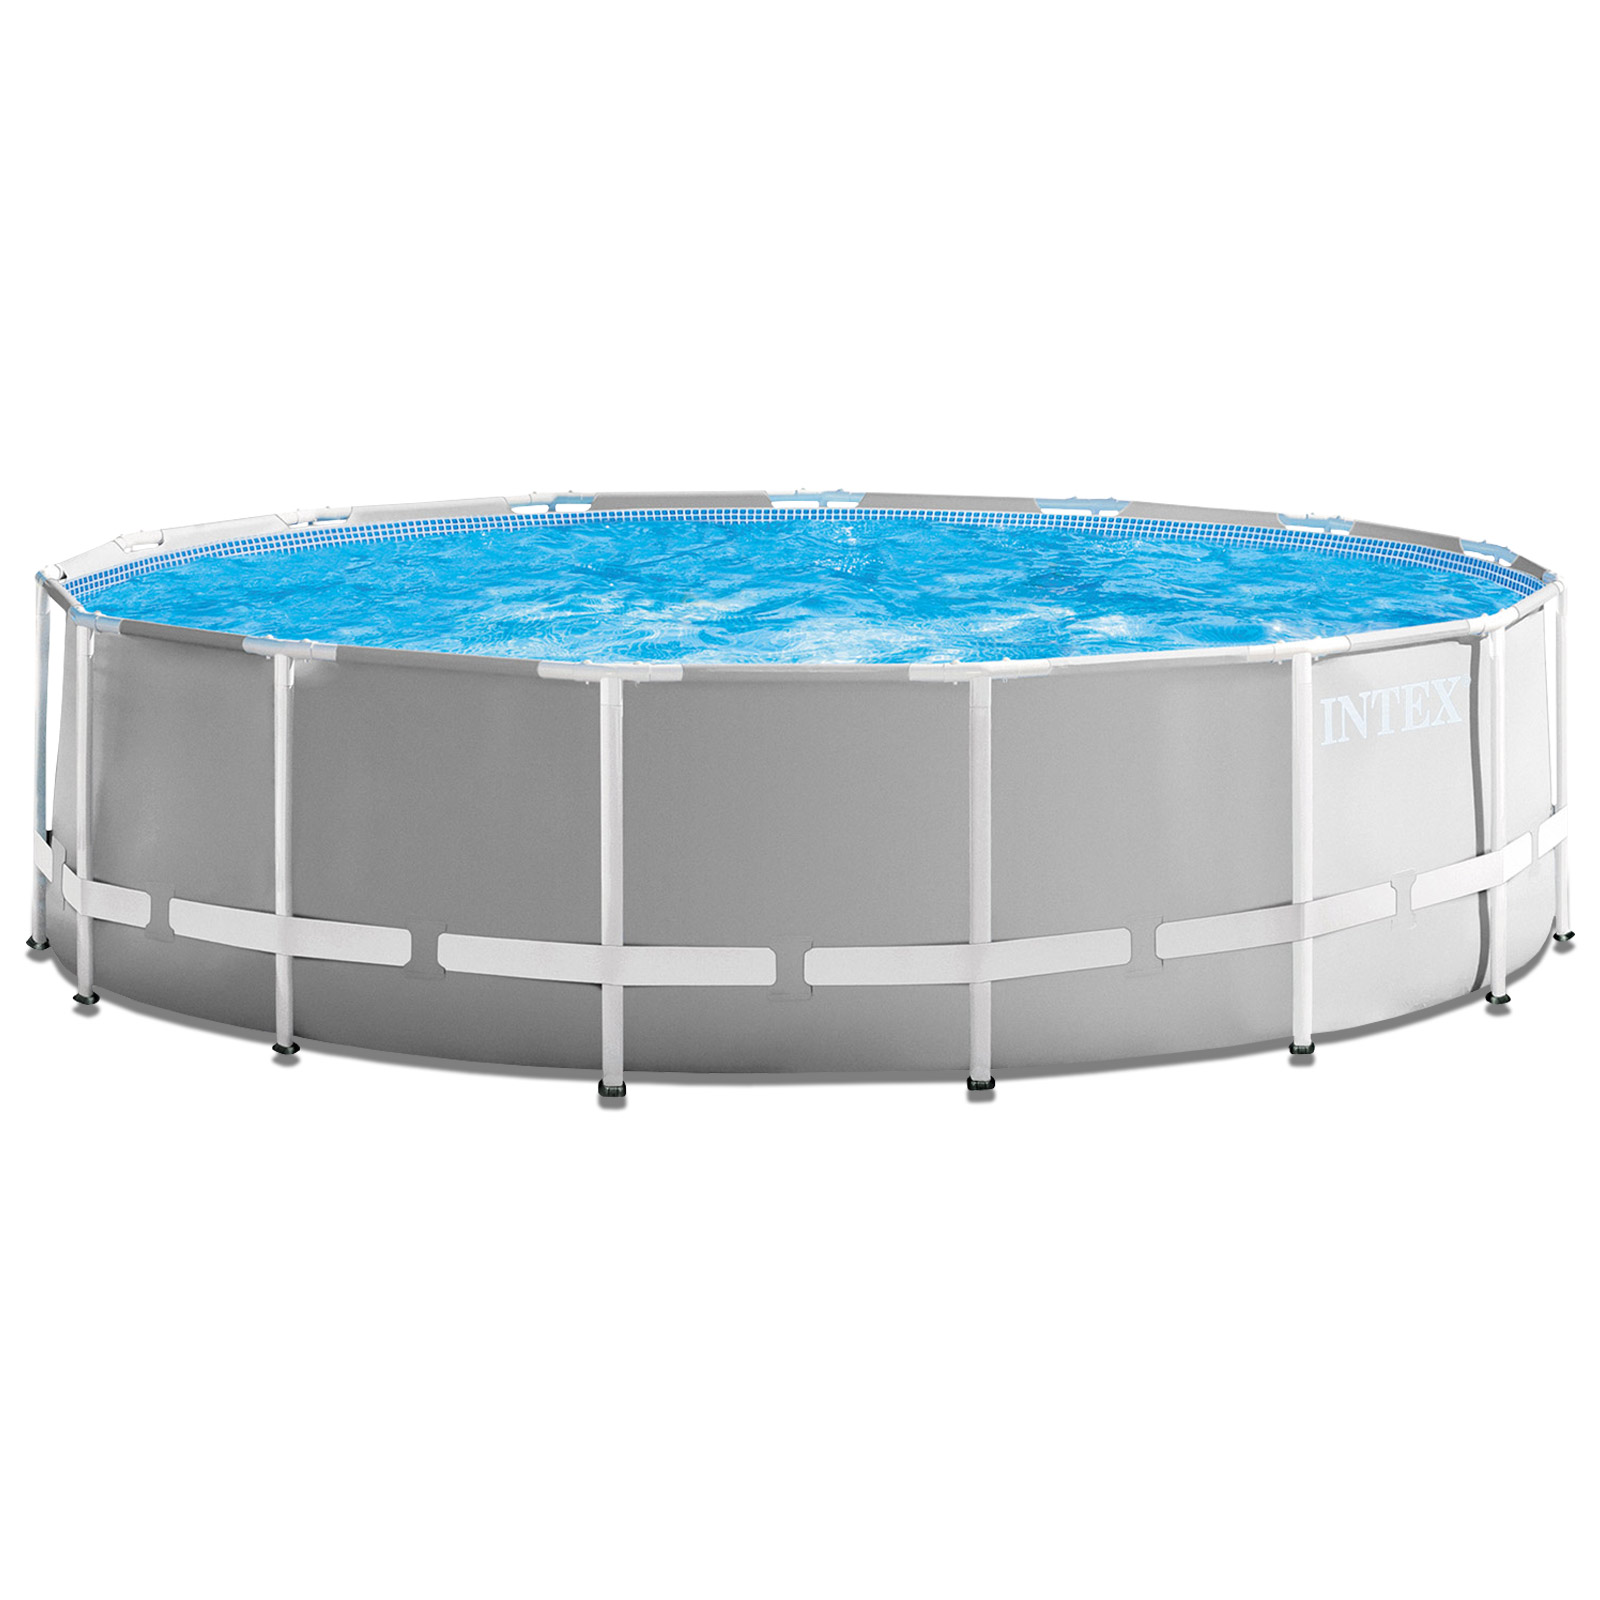 Gute Pool Solarfolie Intex 457x122 Komplettset Swimming Pool Schwimmbad Frame